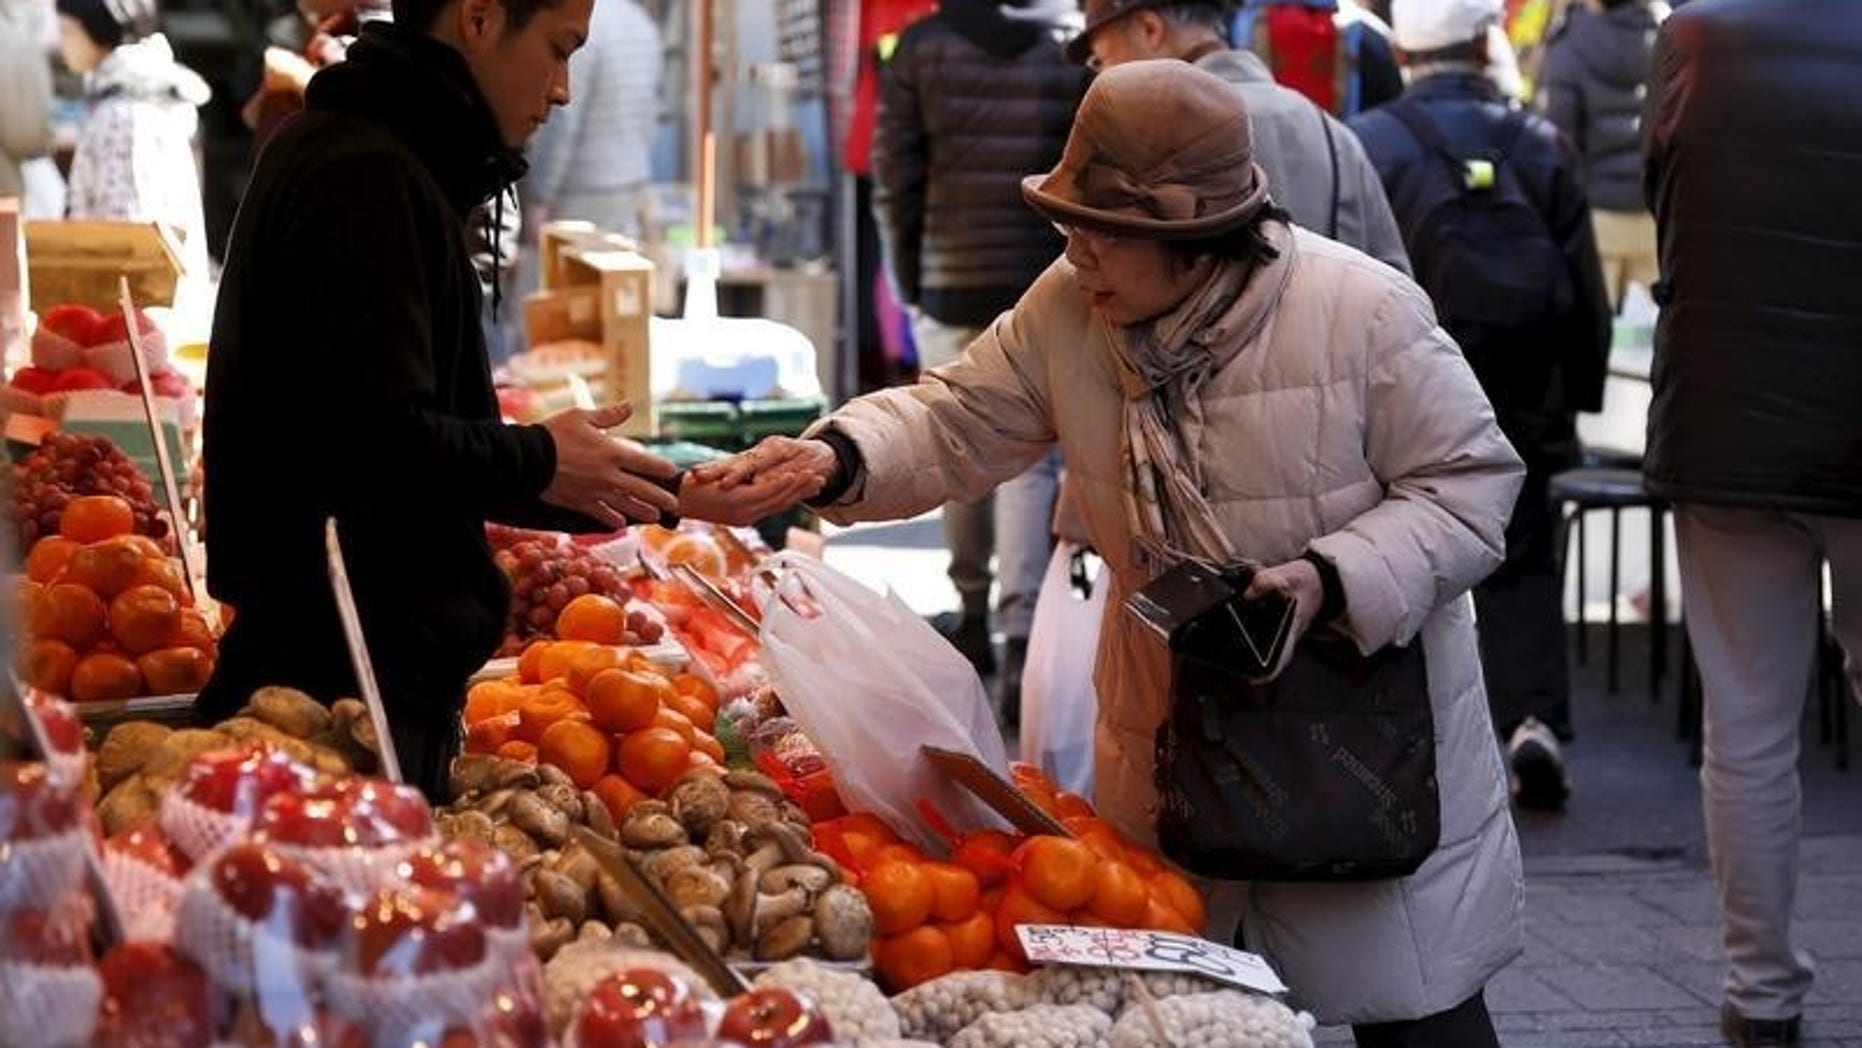 A woman pays money as she buys fruits outside a vegetable store at Ameyoko shopping district in Tokyo